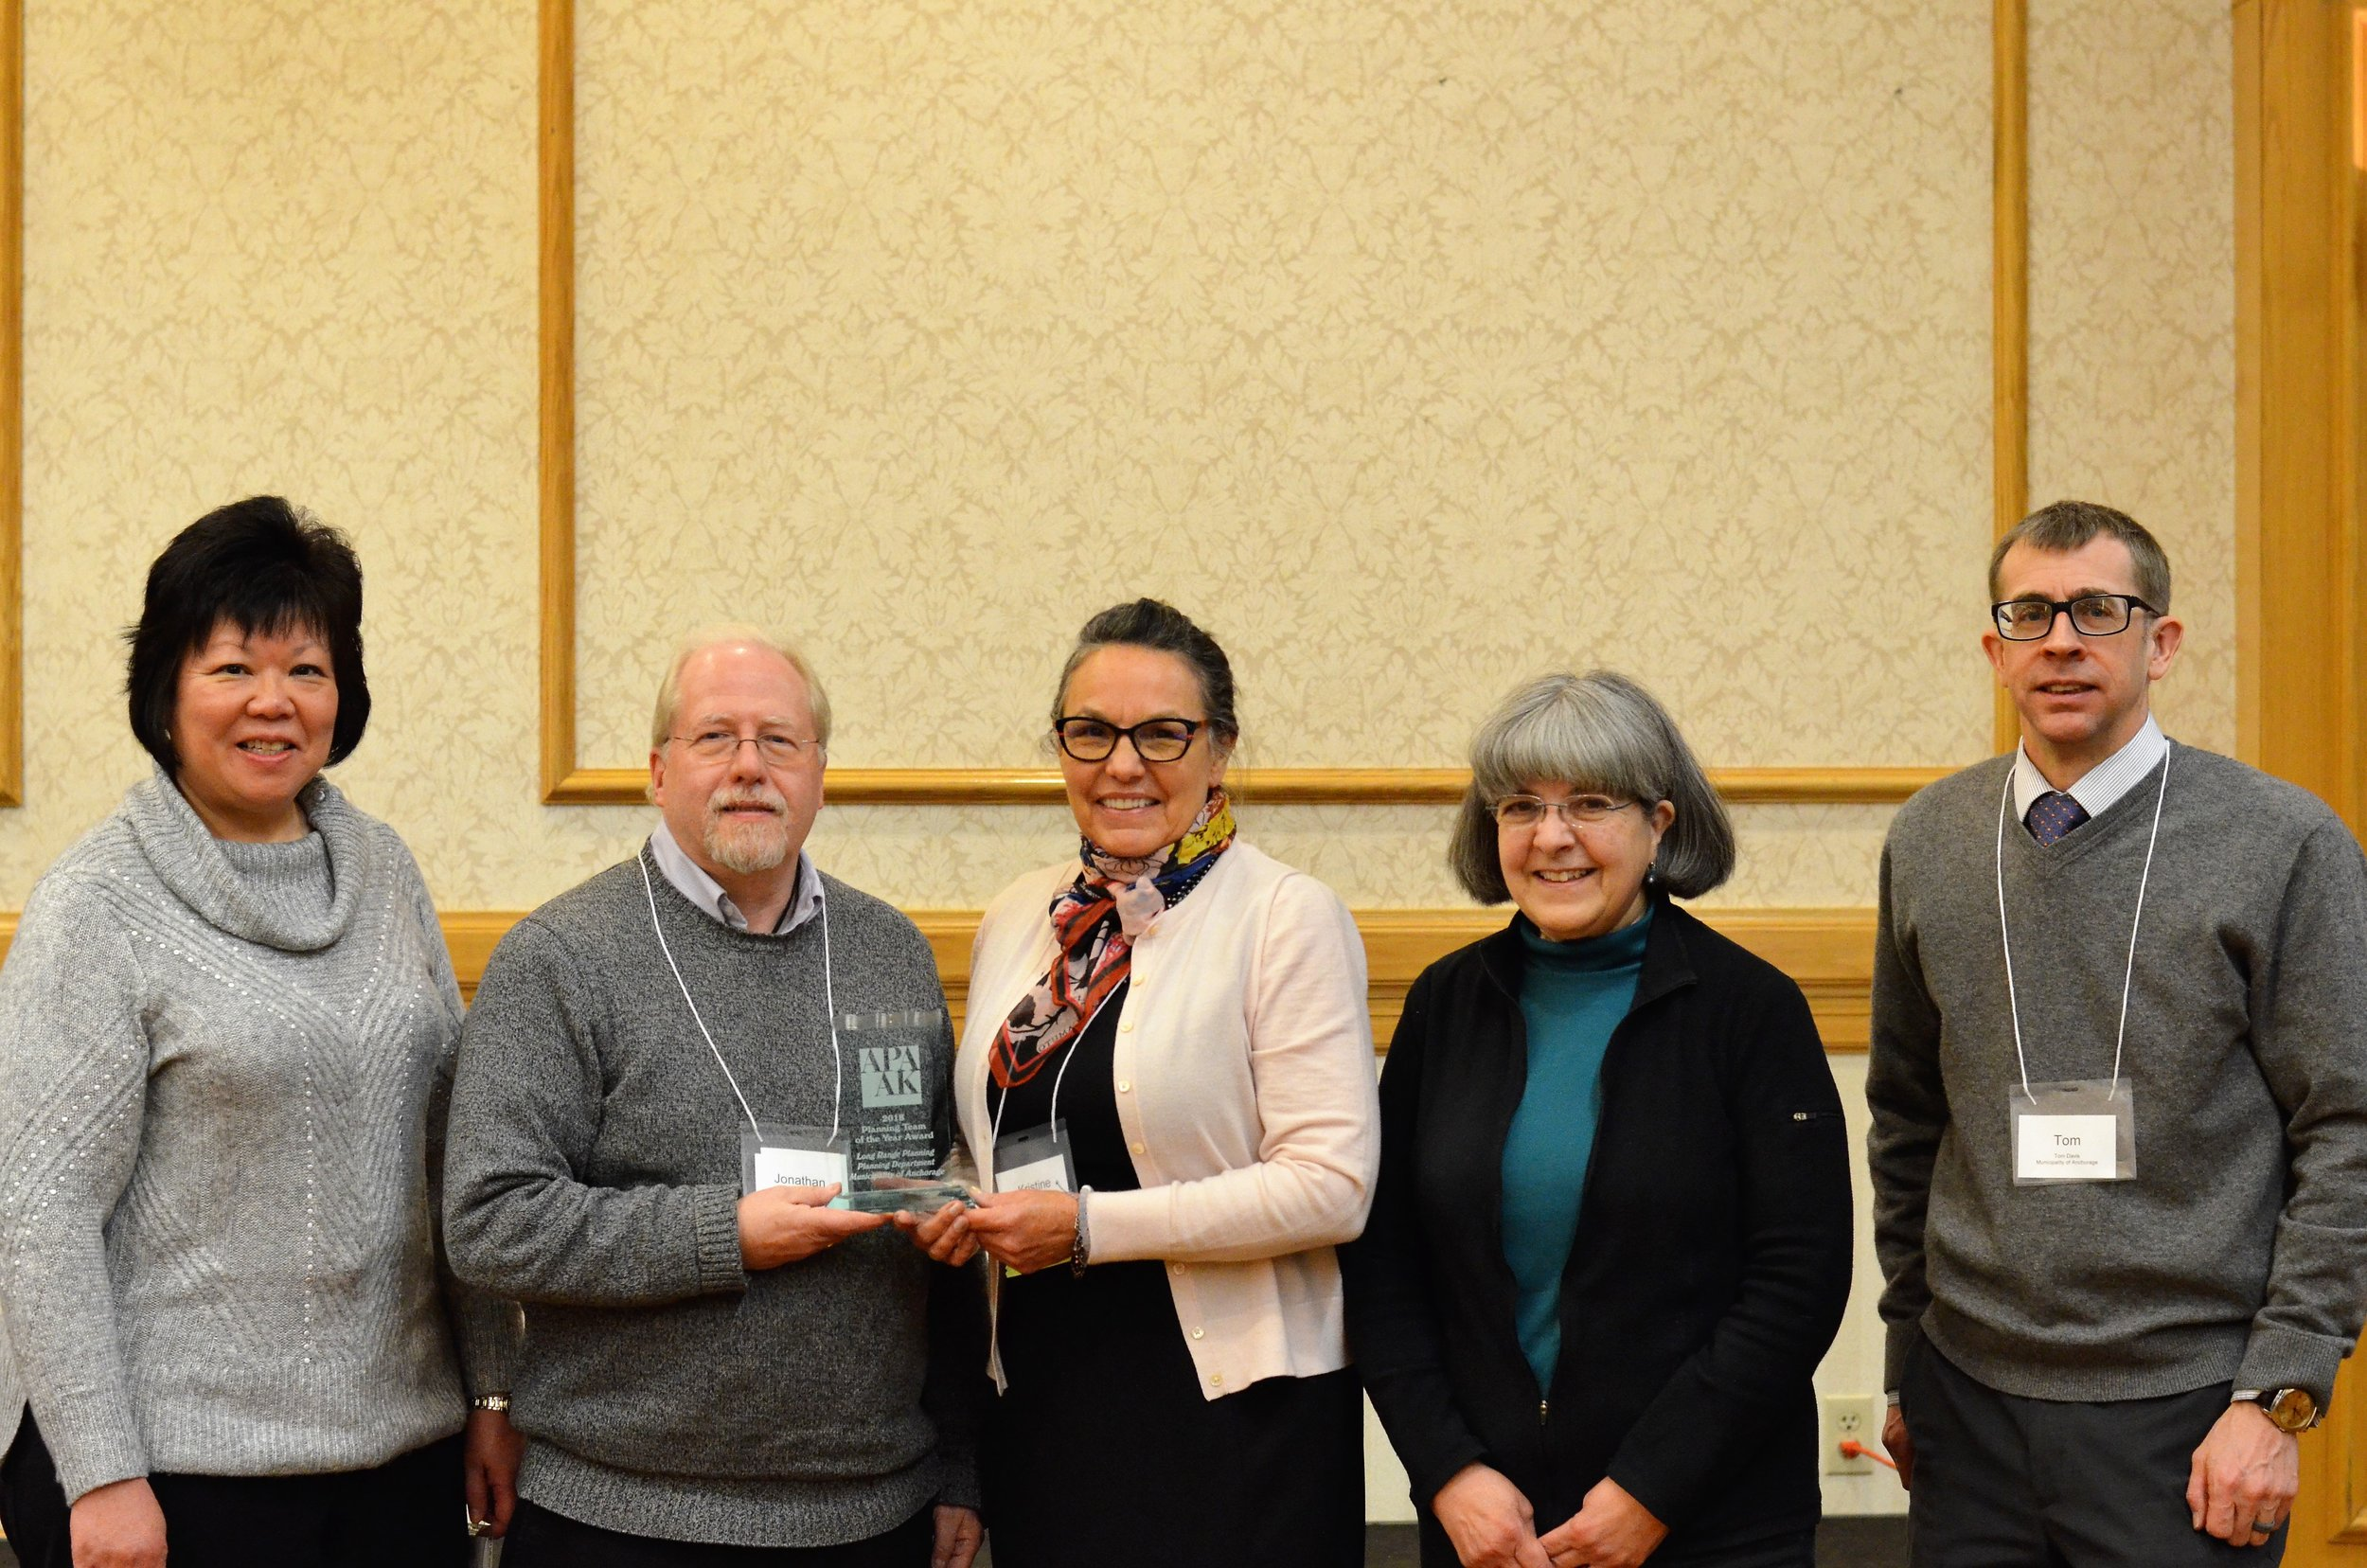 Award for Planning Team - Municipality of Anchorage Long-Range Planning Division. (Far left) Carol Wong, Long-Range Planning Manager, and second from right, Sue Perry. Not pictured was Thede Tobish, Senior Planner.